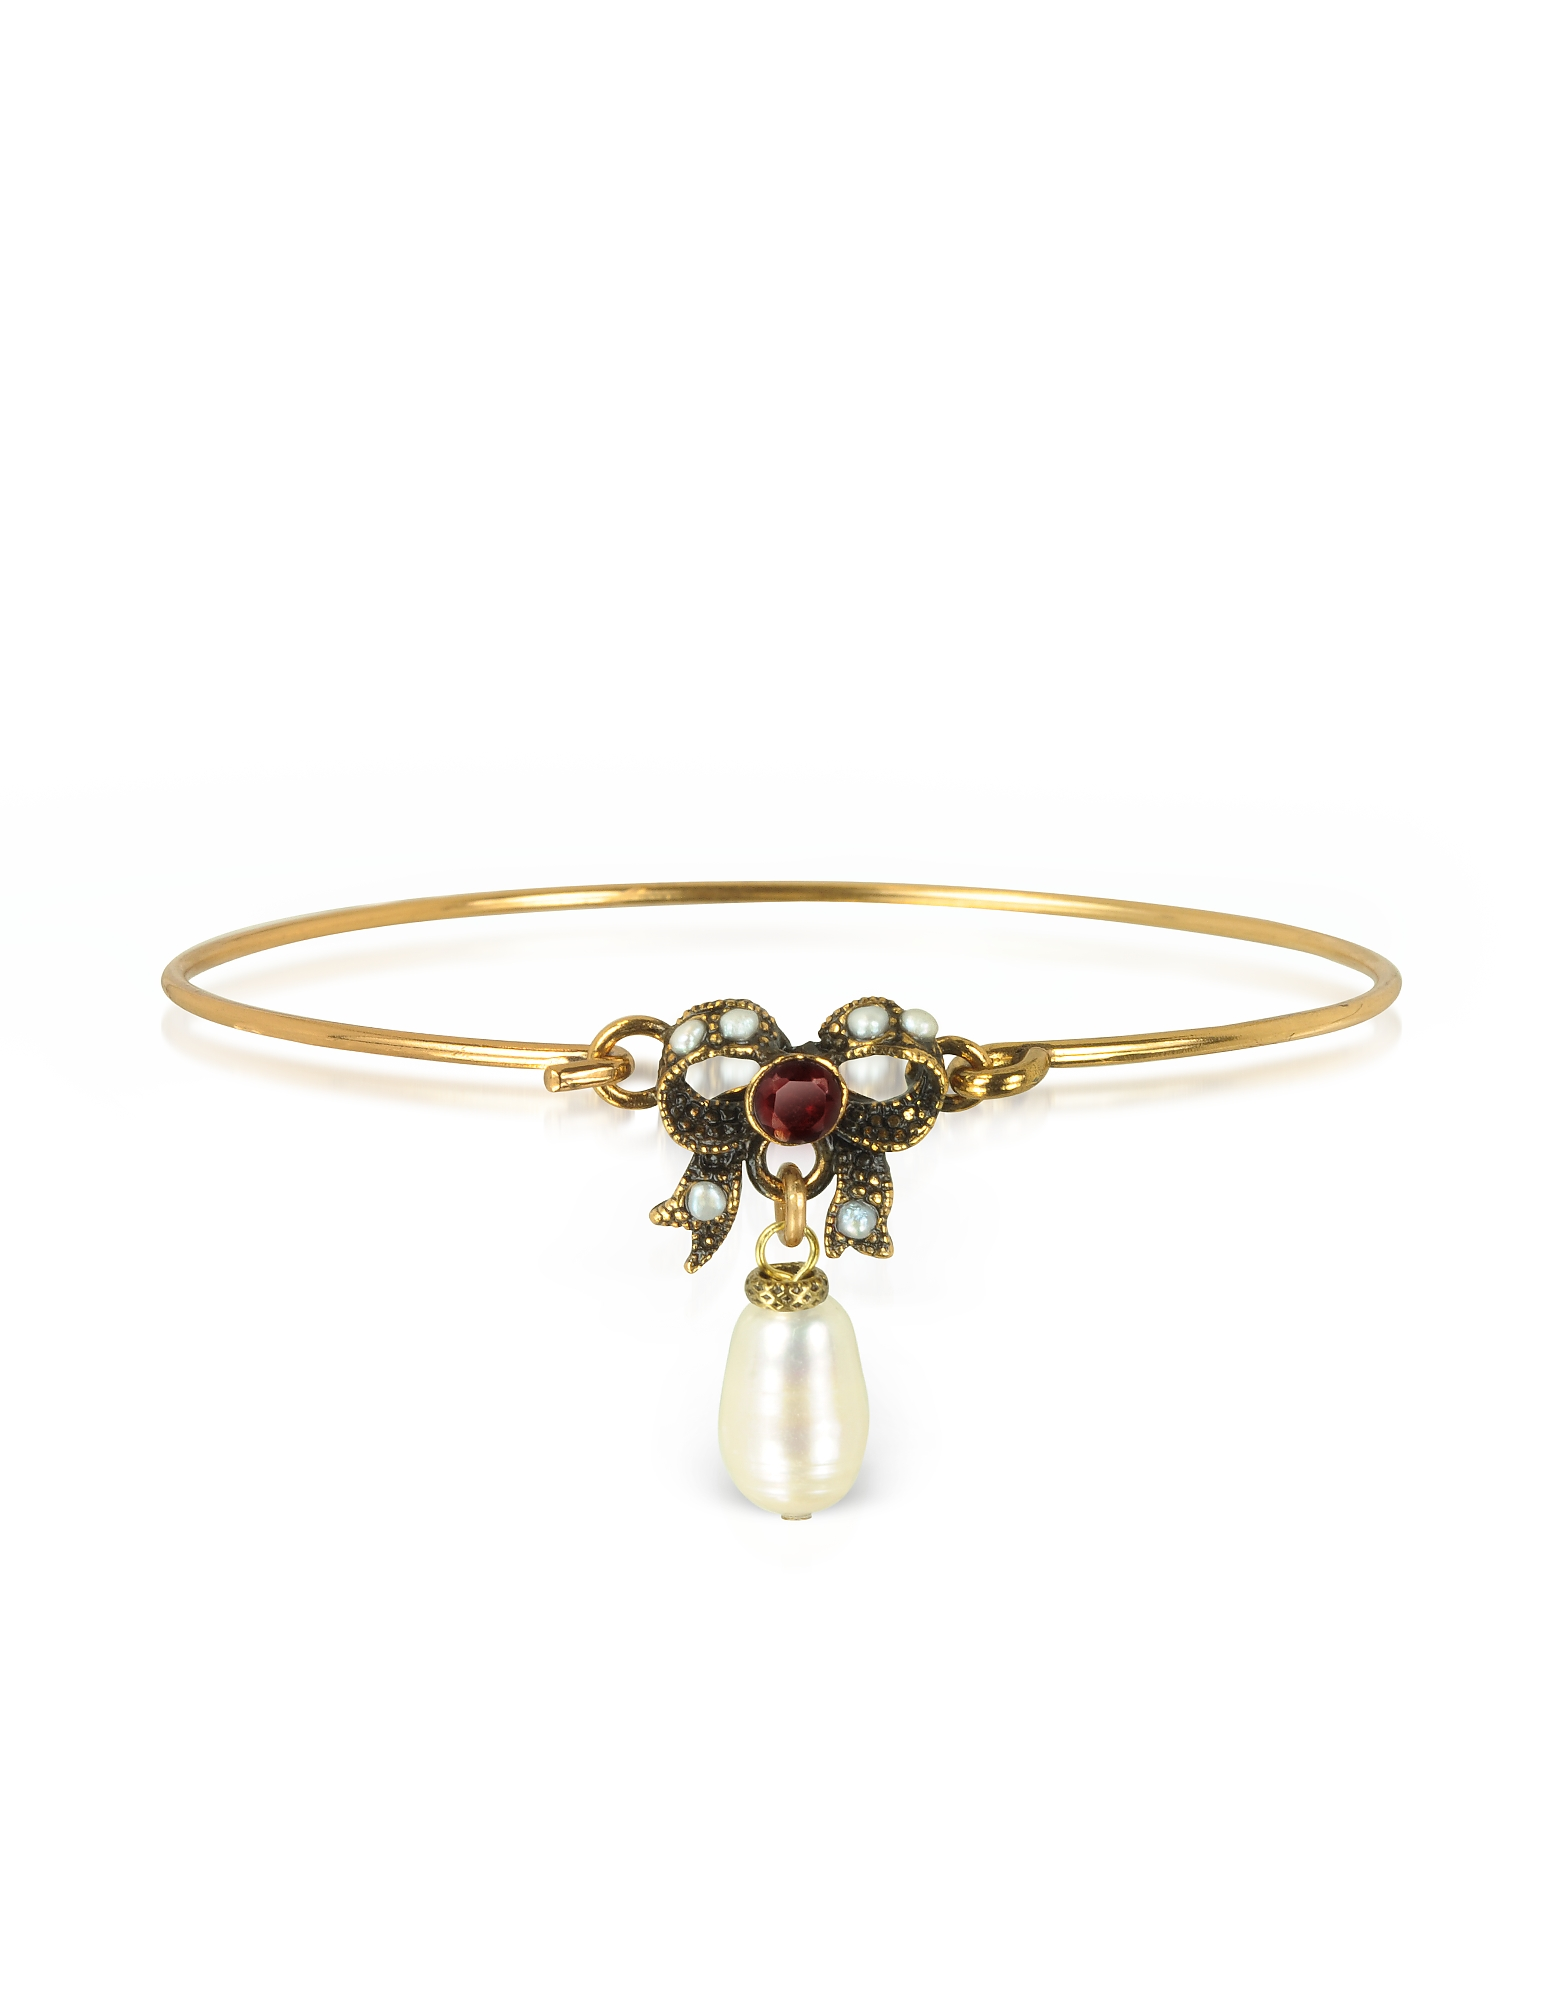 Alcozer & J Bracelets, Happiness Goldtone Brass Bow and Glass Pearl Bangle